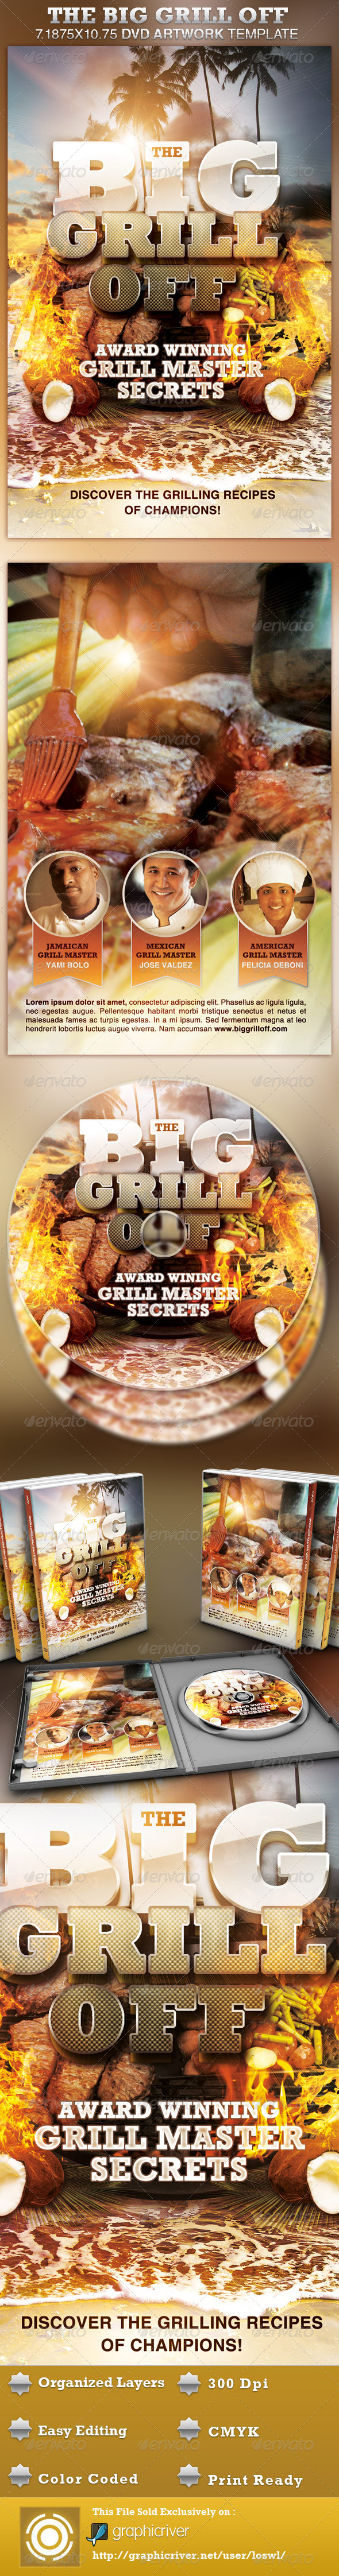 http://3.s3.envato.com/files/51198274/Big-Grill-Off-DVD-Template-Image-Preview.jpg